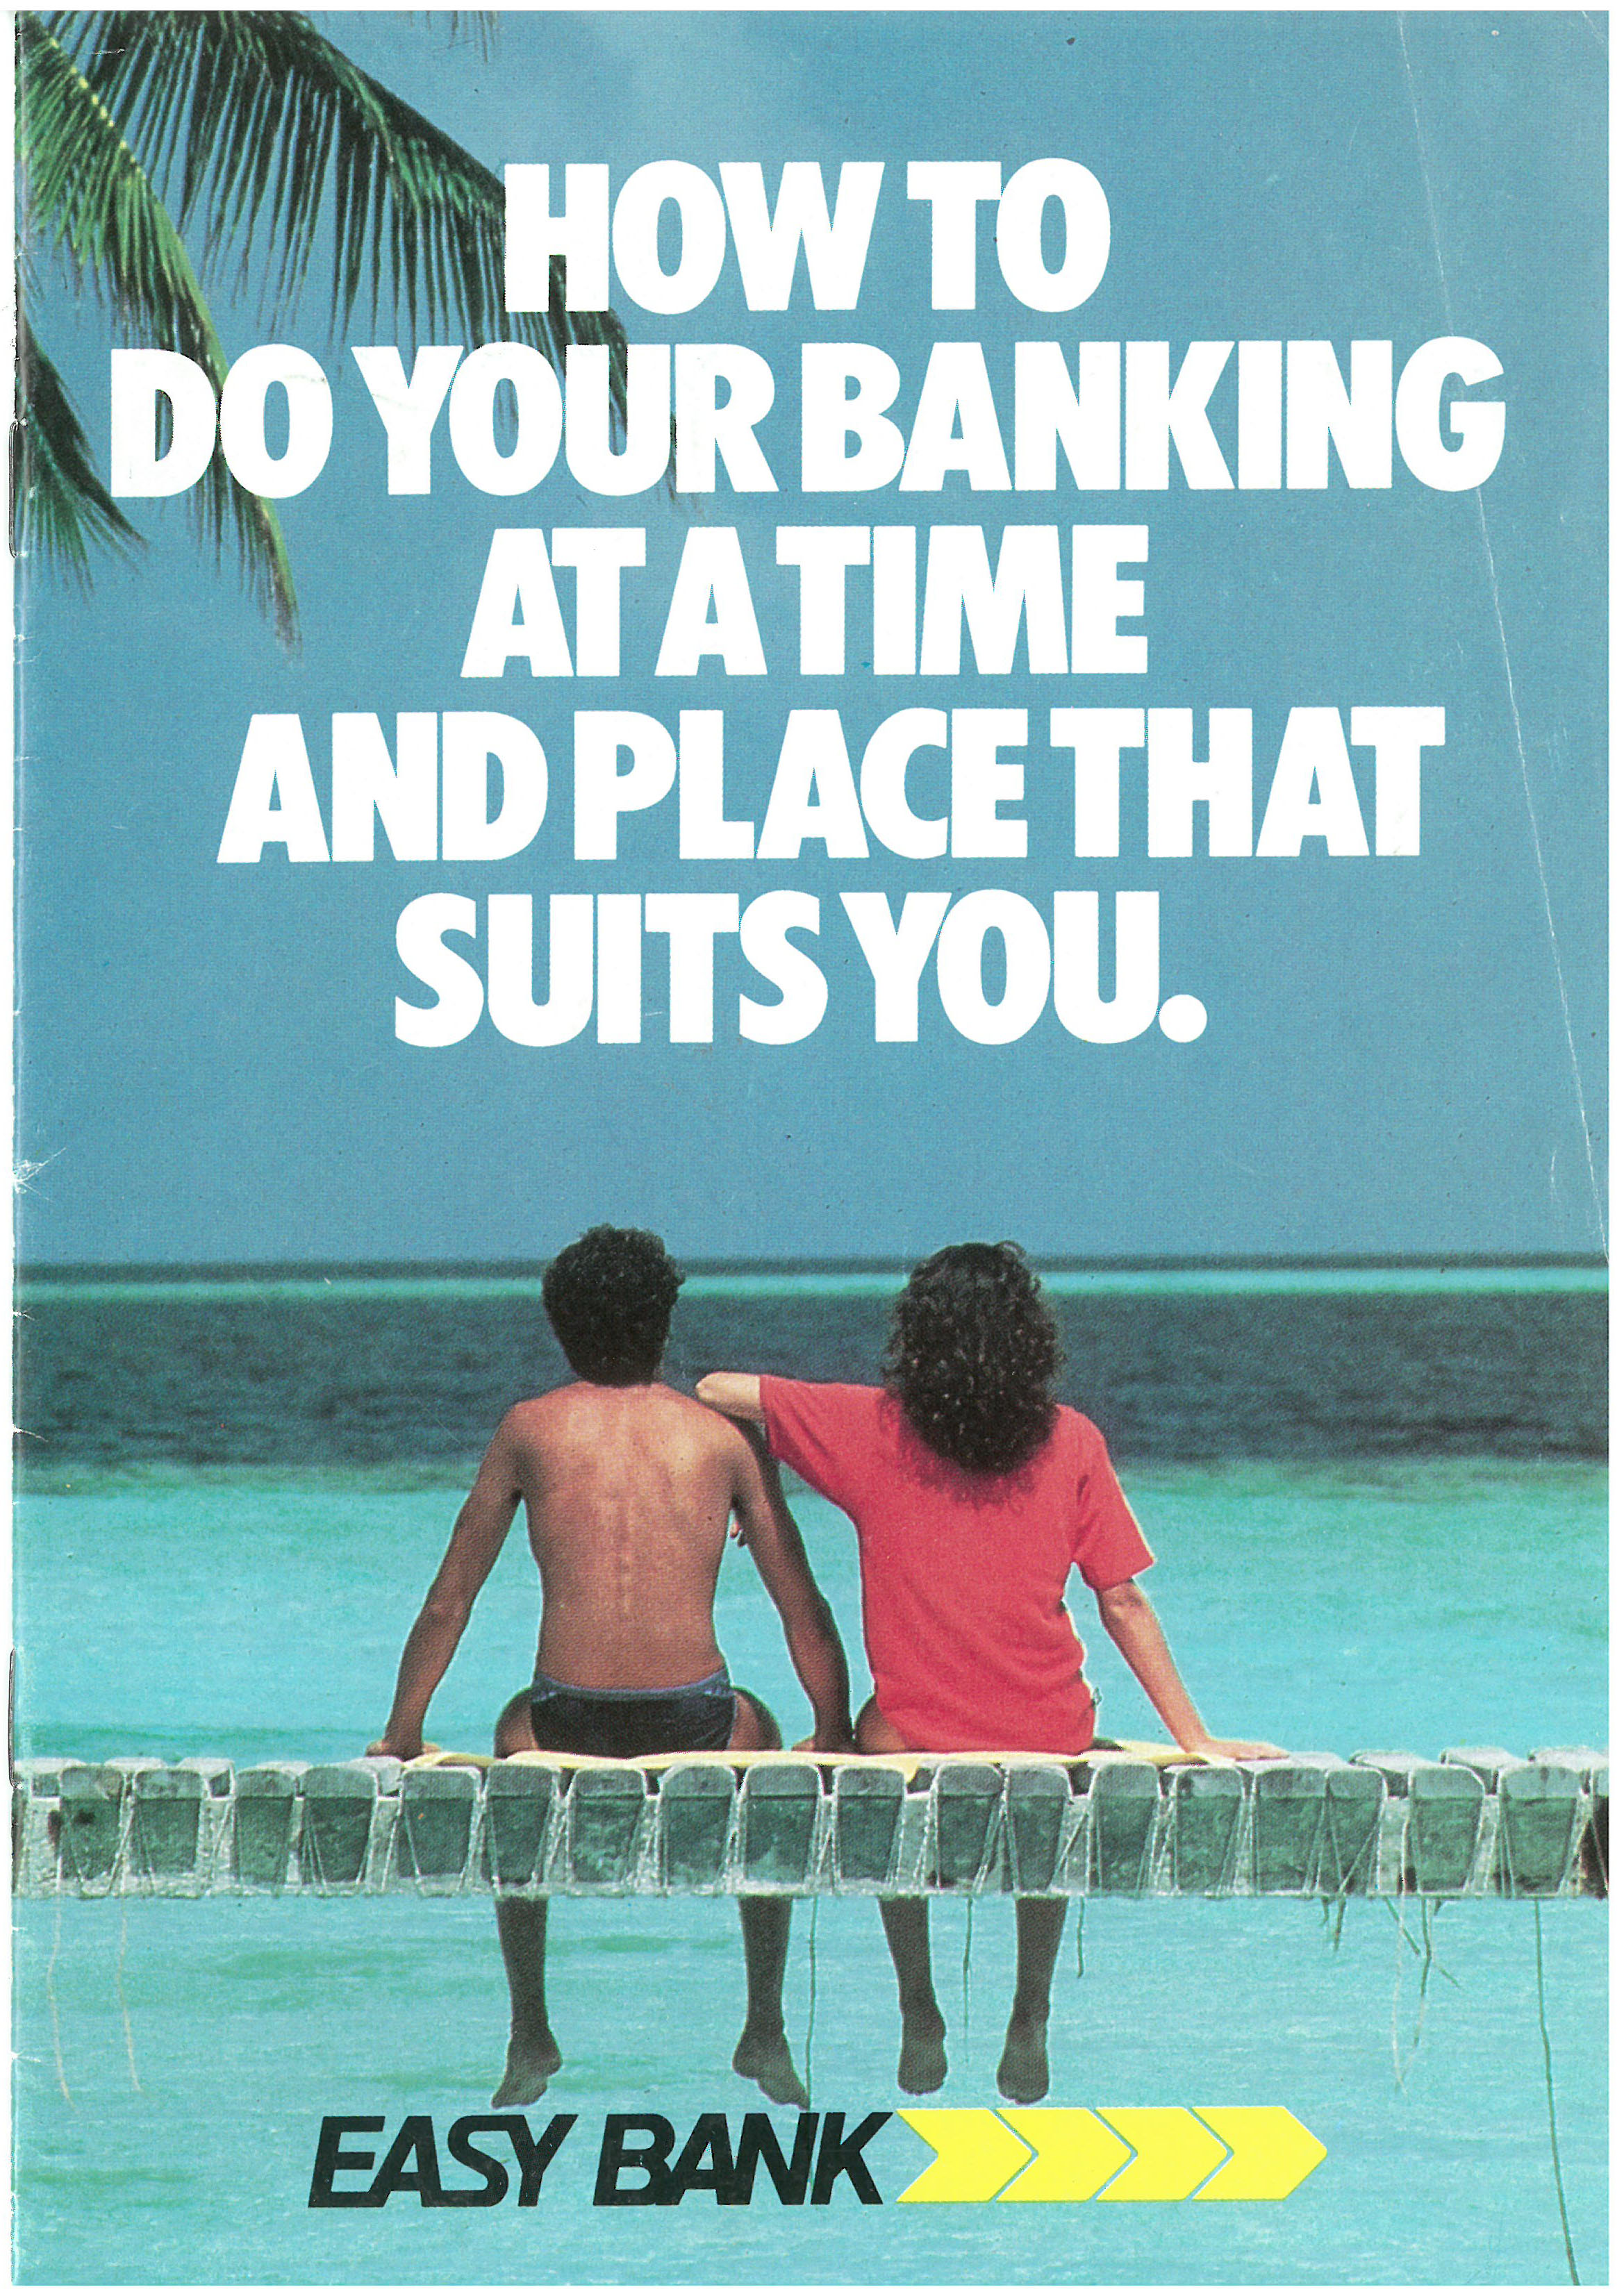 A brochure about easy banking from 1986